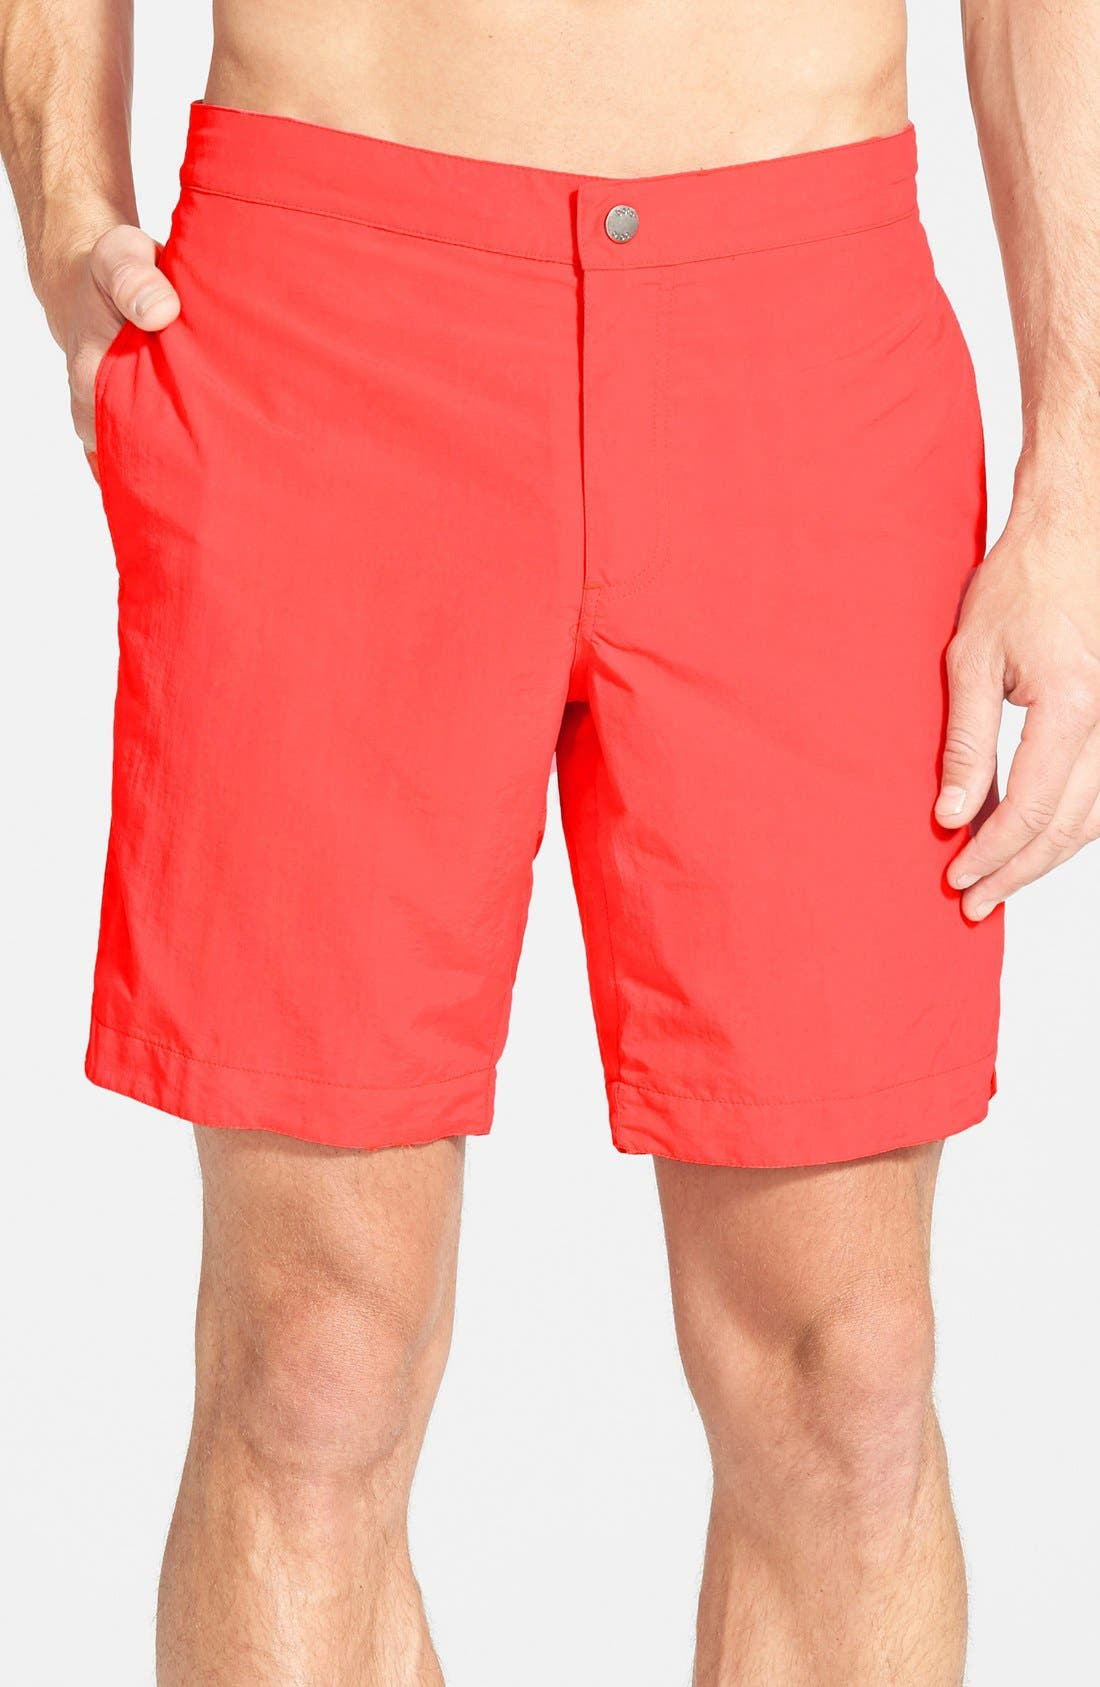 'Aruba - Island' Tailored Fit 8.5 Inch Board Shorts,                             Main thumbnail 1, color,                             Island Coral Red